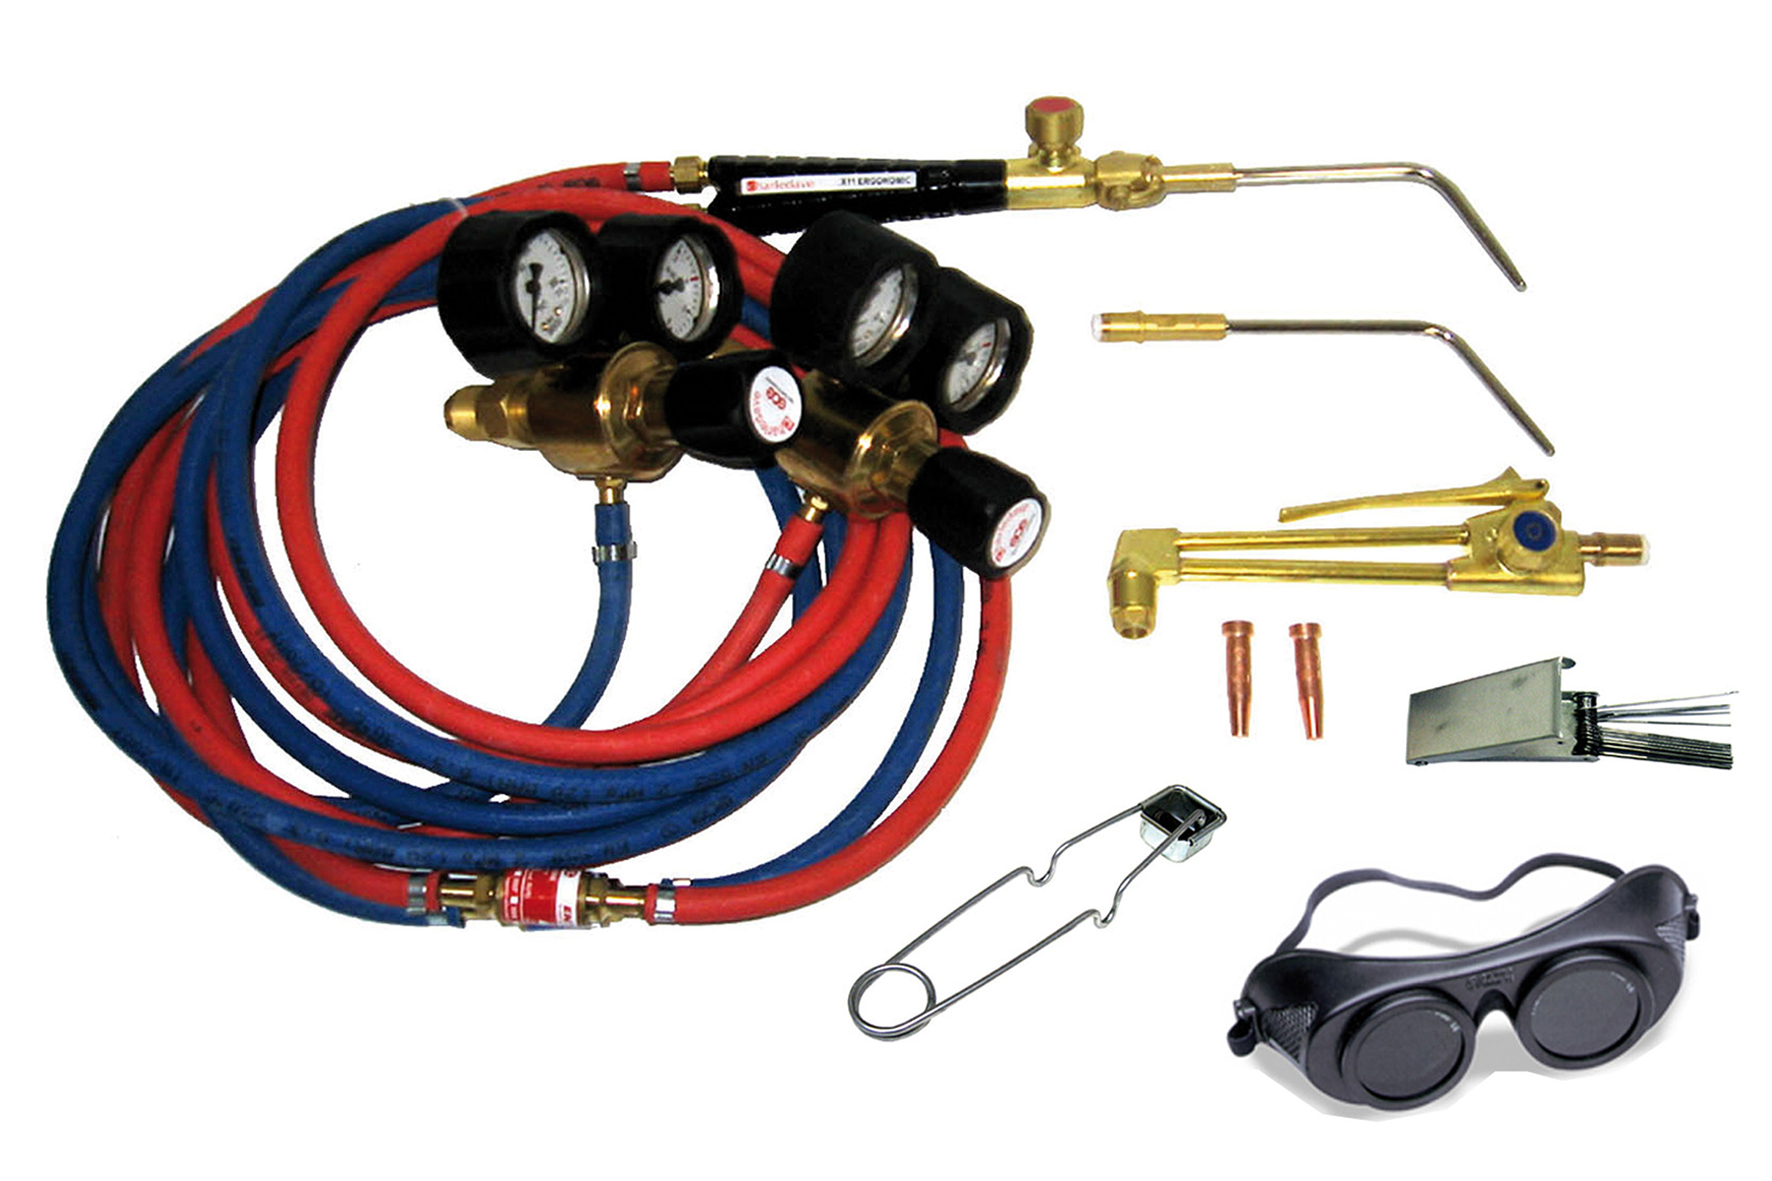 WELDING SET MINIDAVE JETSOUD page image